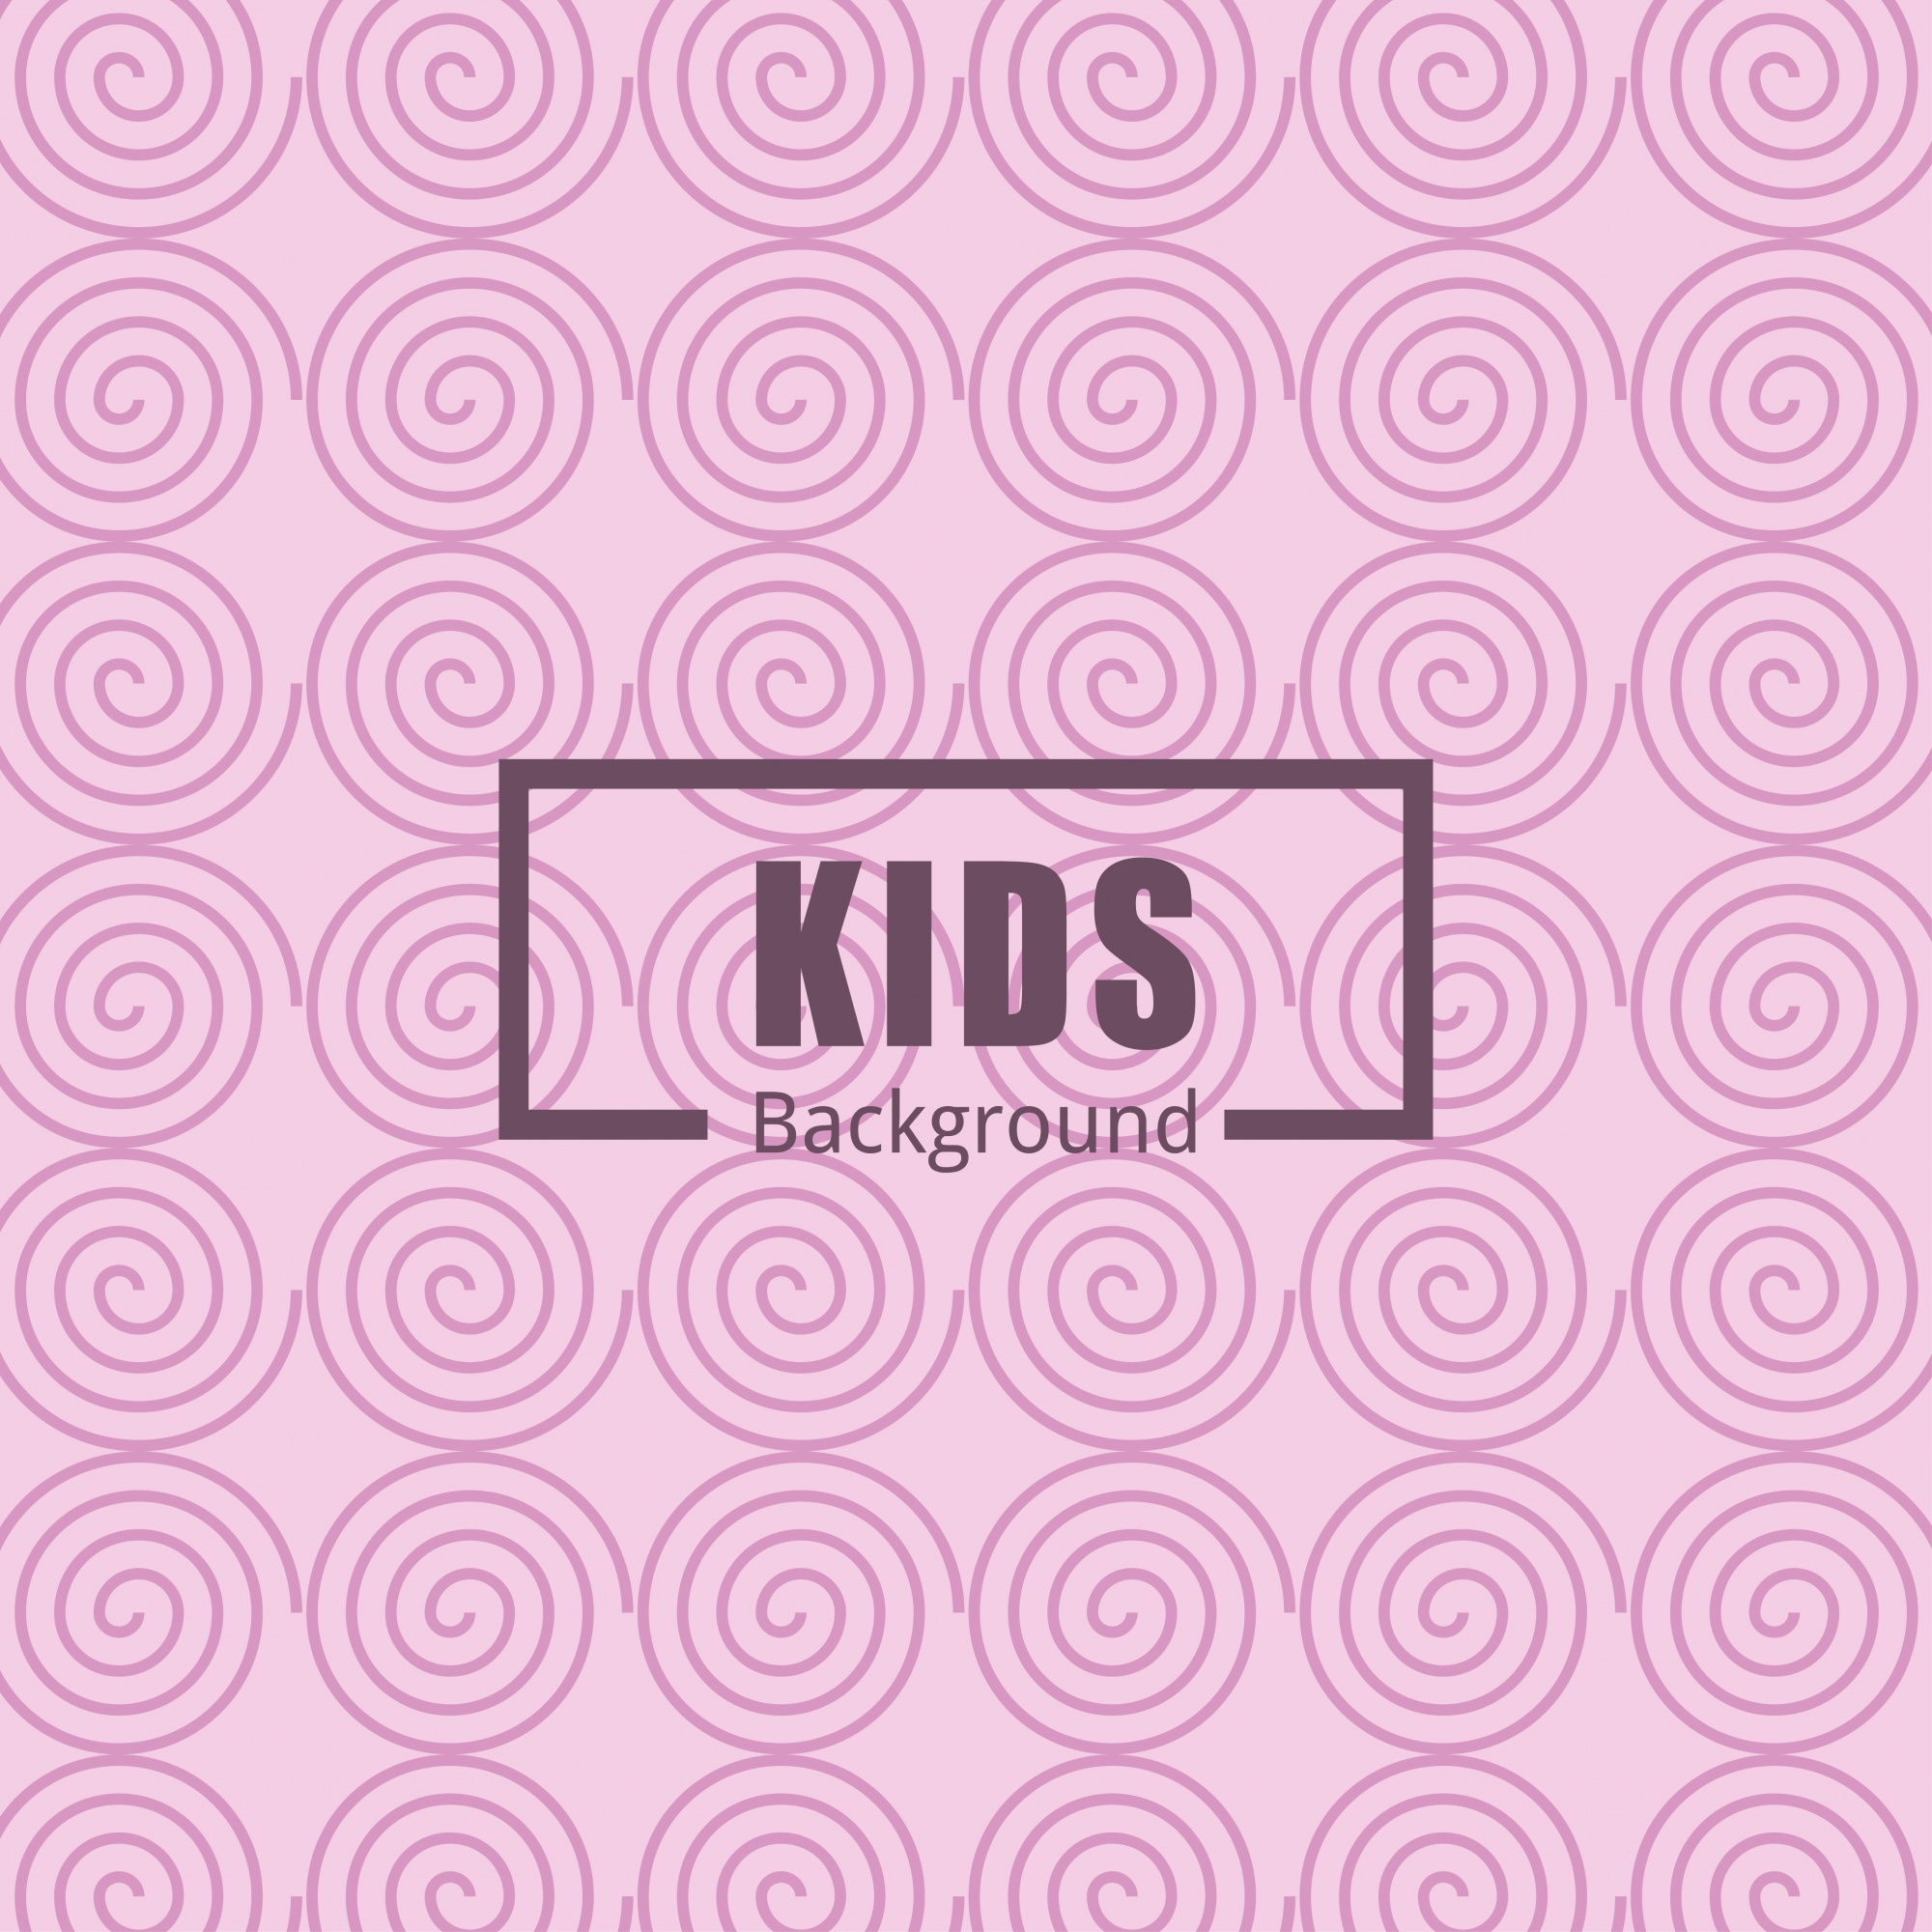 Circular pattern background for kids